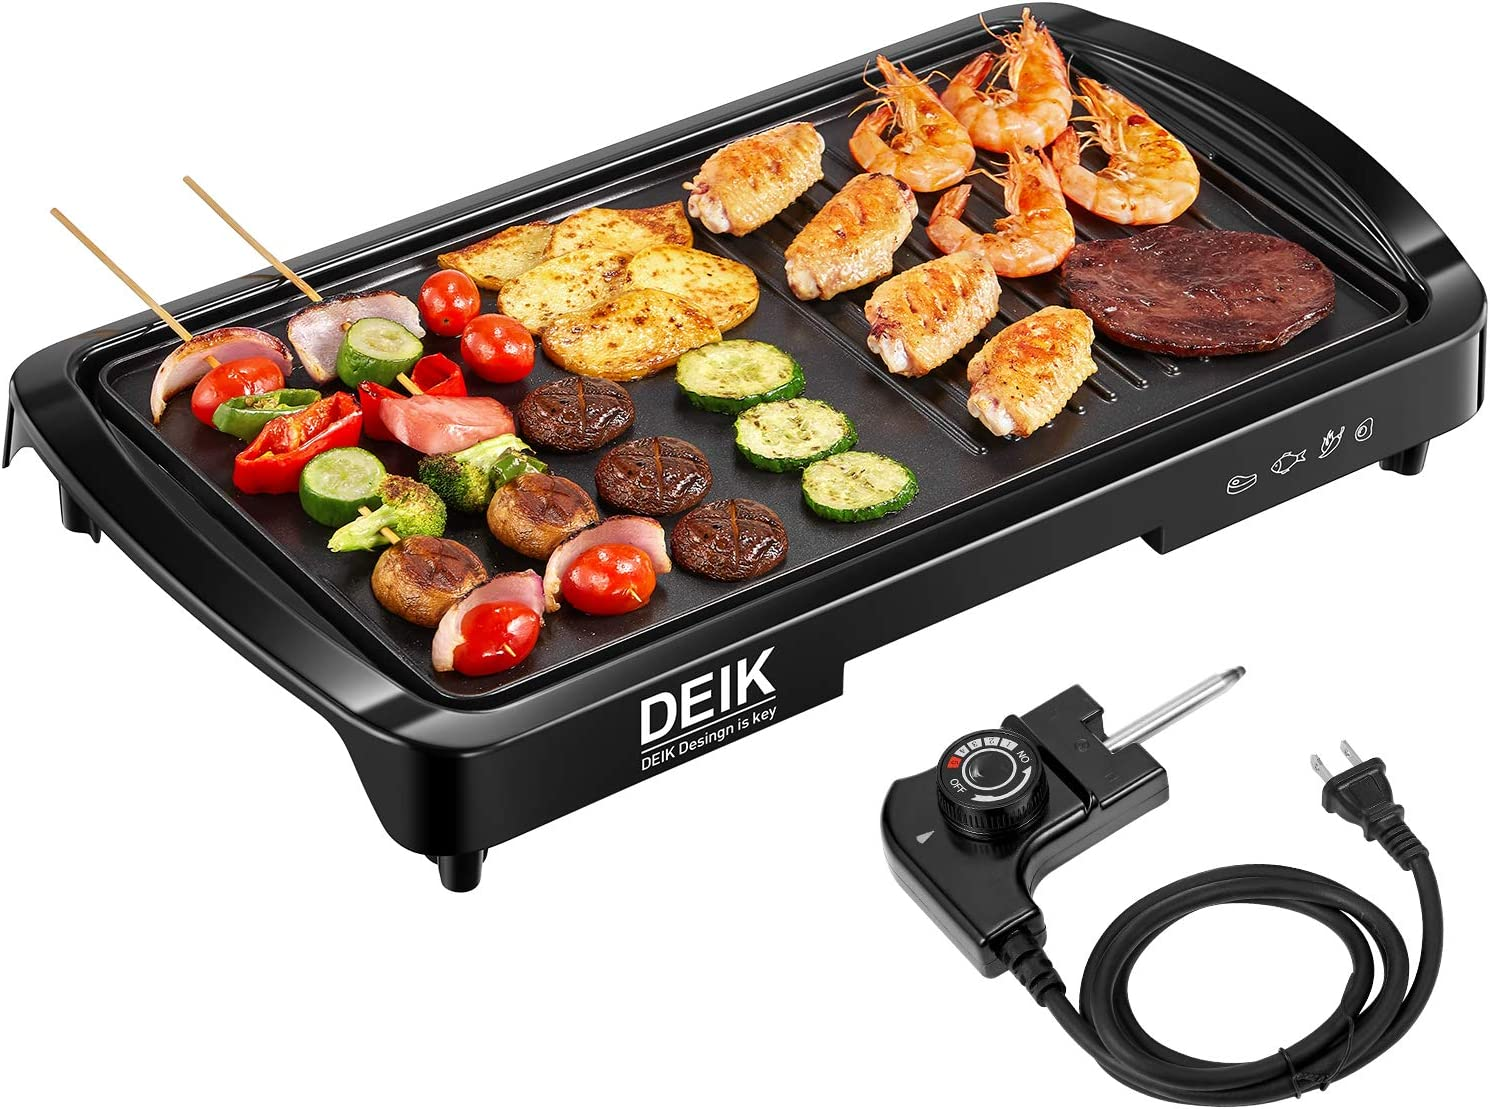 Electric Griddle, DEIK 2-in-1 Indoor Grill Smokeless Coated Non-Stick Pancake Griddle, 20 x10 Extra Large Surface with 2 Oil Collection Channel, Cold-Touch Design, 5-Level Control, 1600W